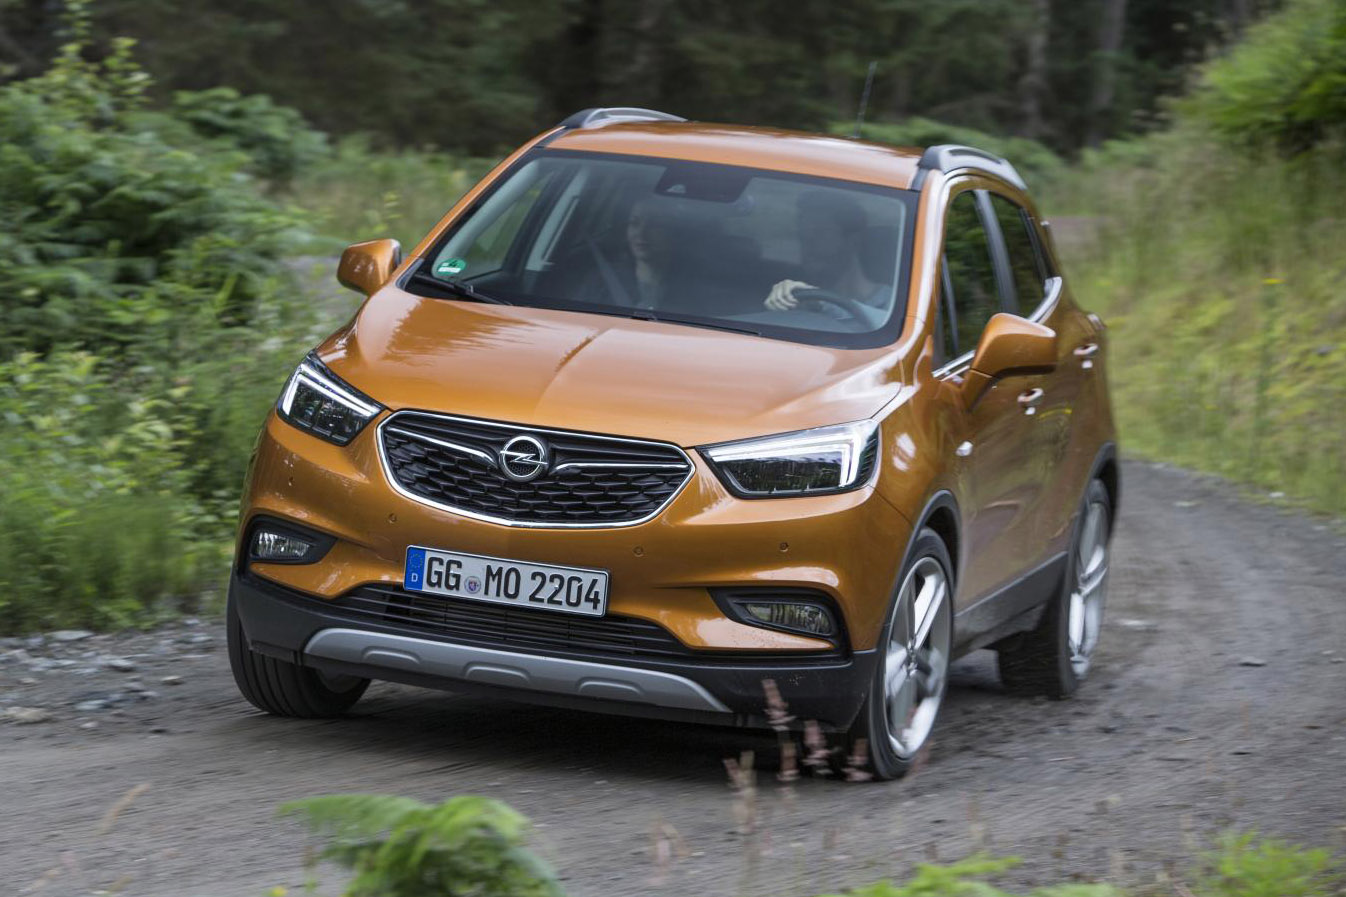 opel mokka x 1 6 cdti 4x4 innovation autotest specificaties popi opi. Black Bedroom Furniture Sets. Home Design Ideas